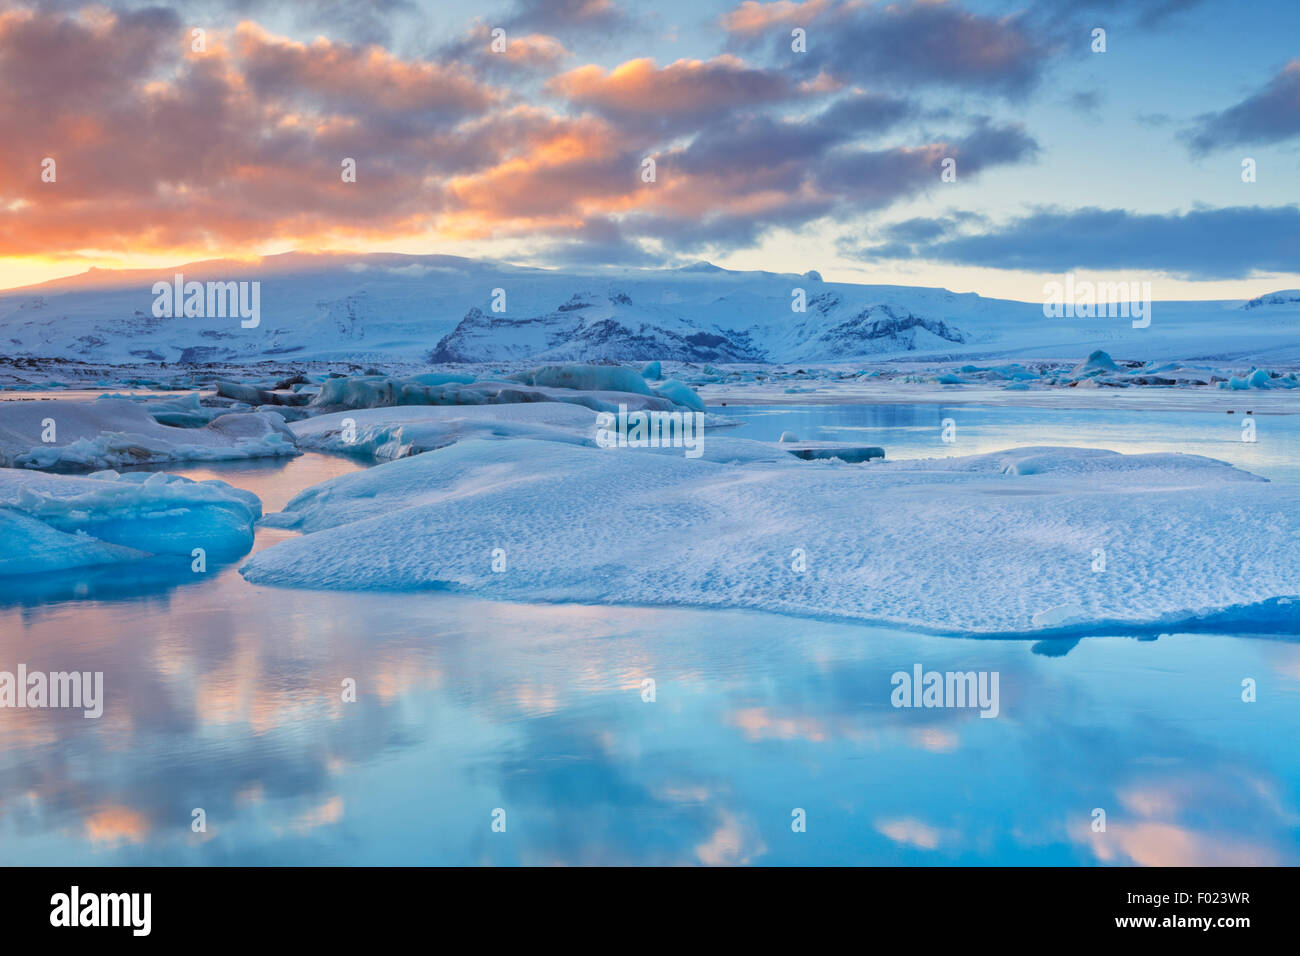 Icebergs in the Jökulsárlón glacier lake in Iceland in winter. Photographed at sunset. - Stock Image